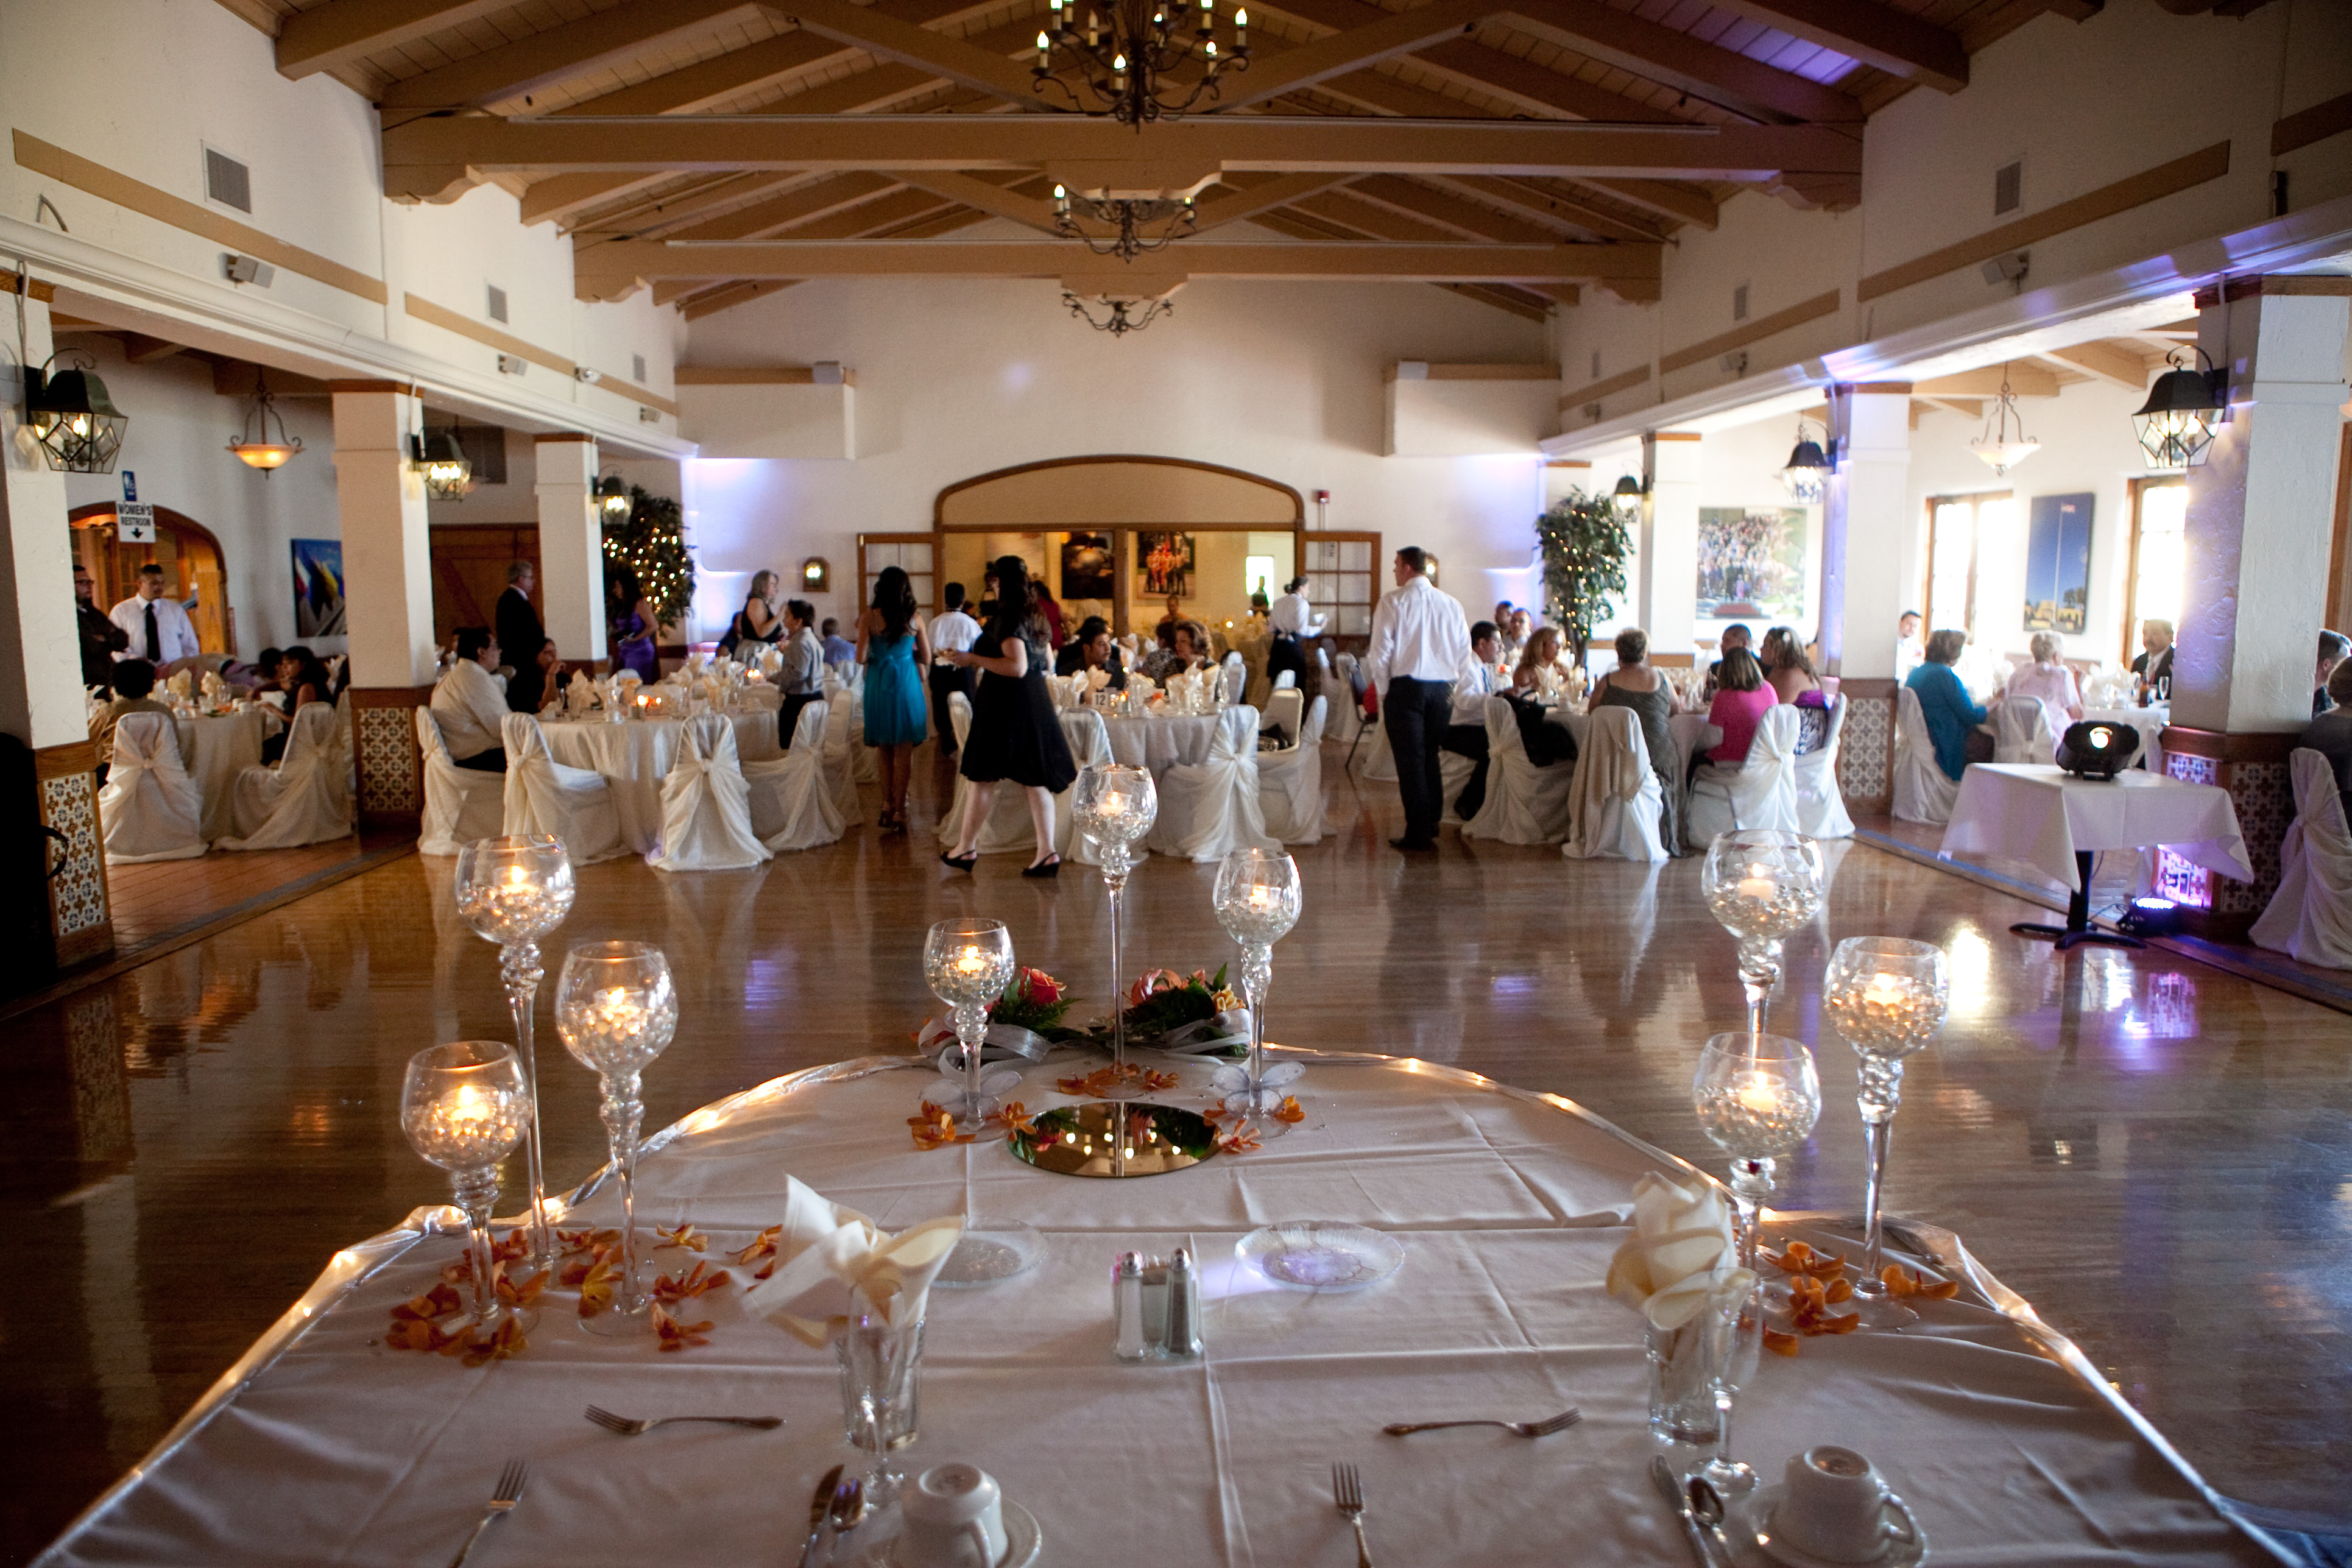 San Diego Military Wedding At Your Side Planning